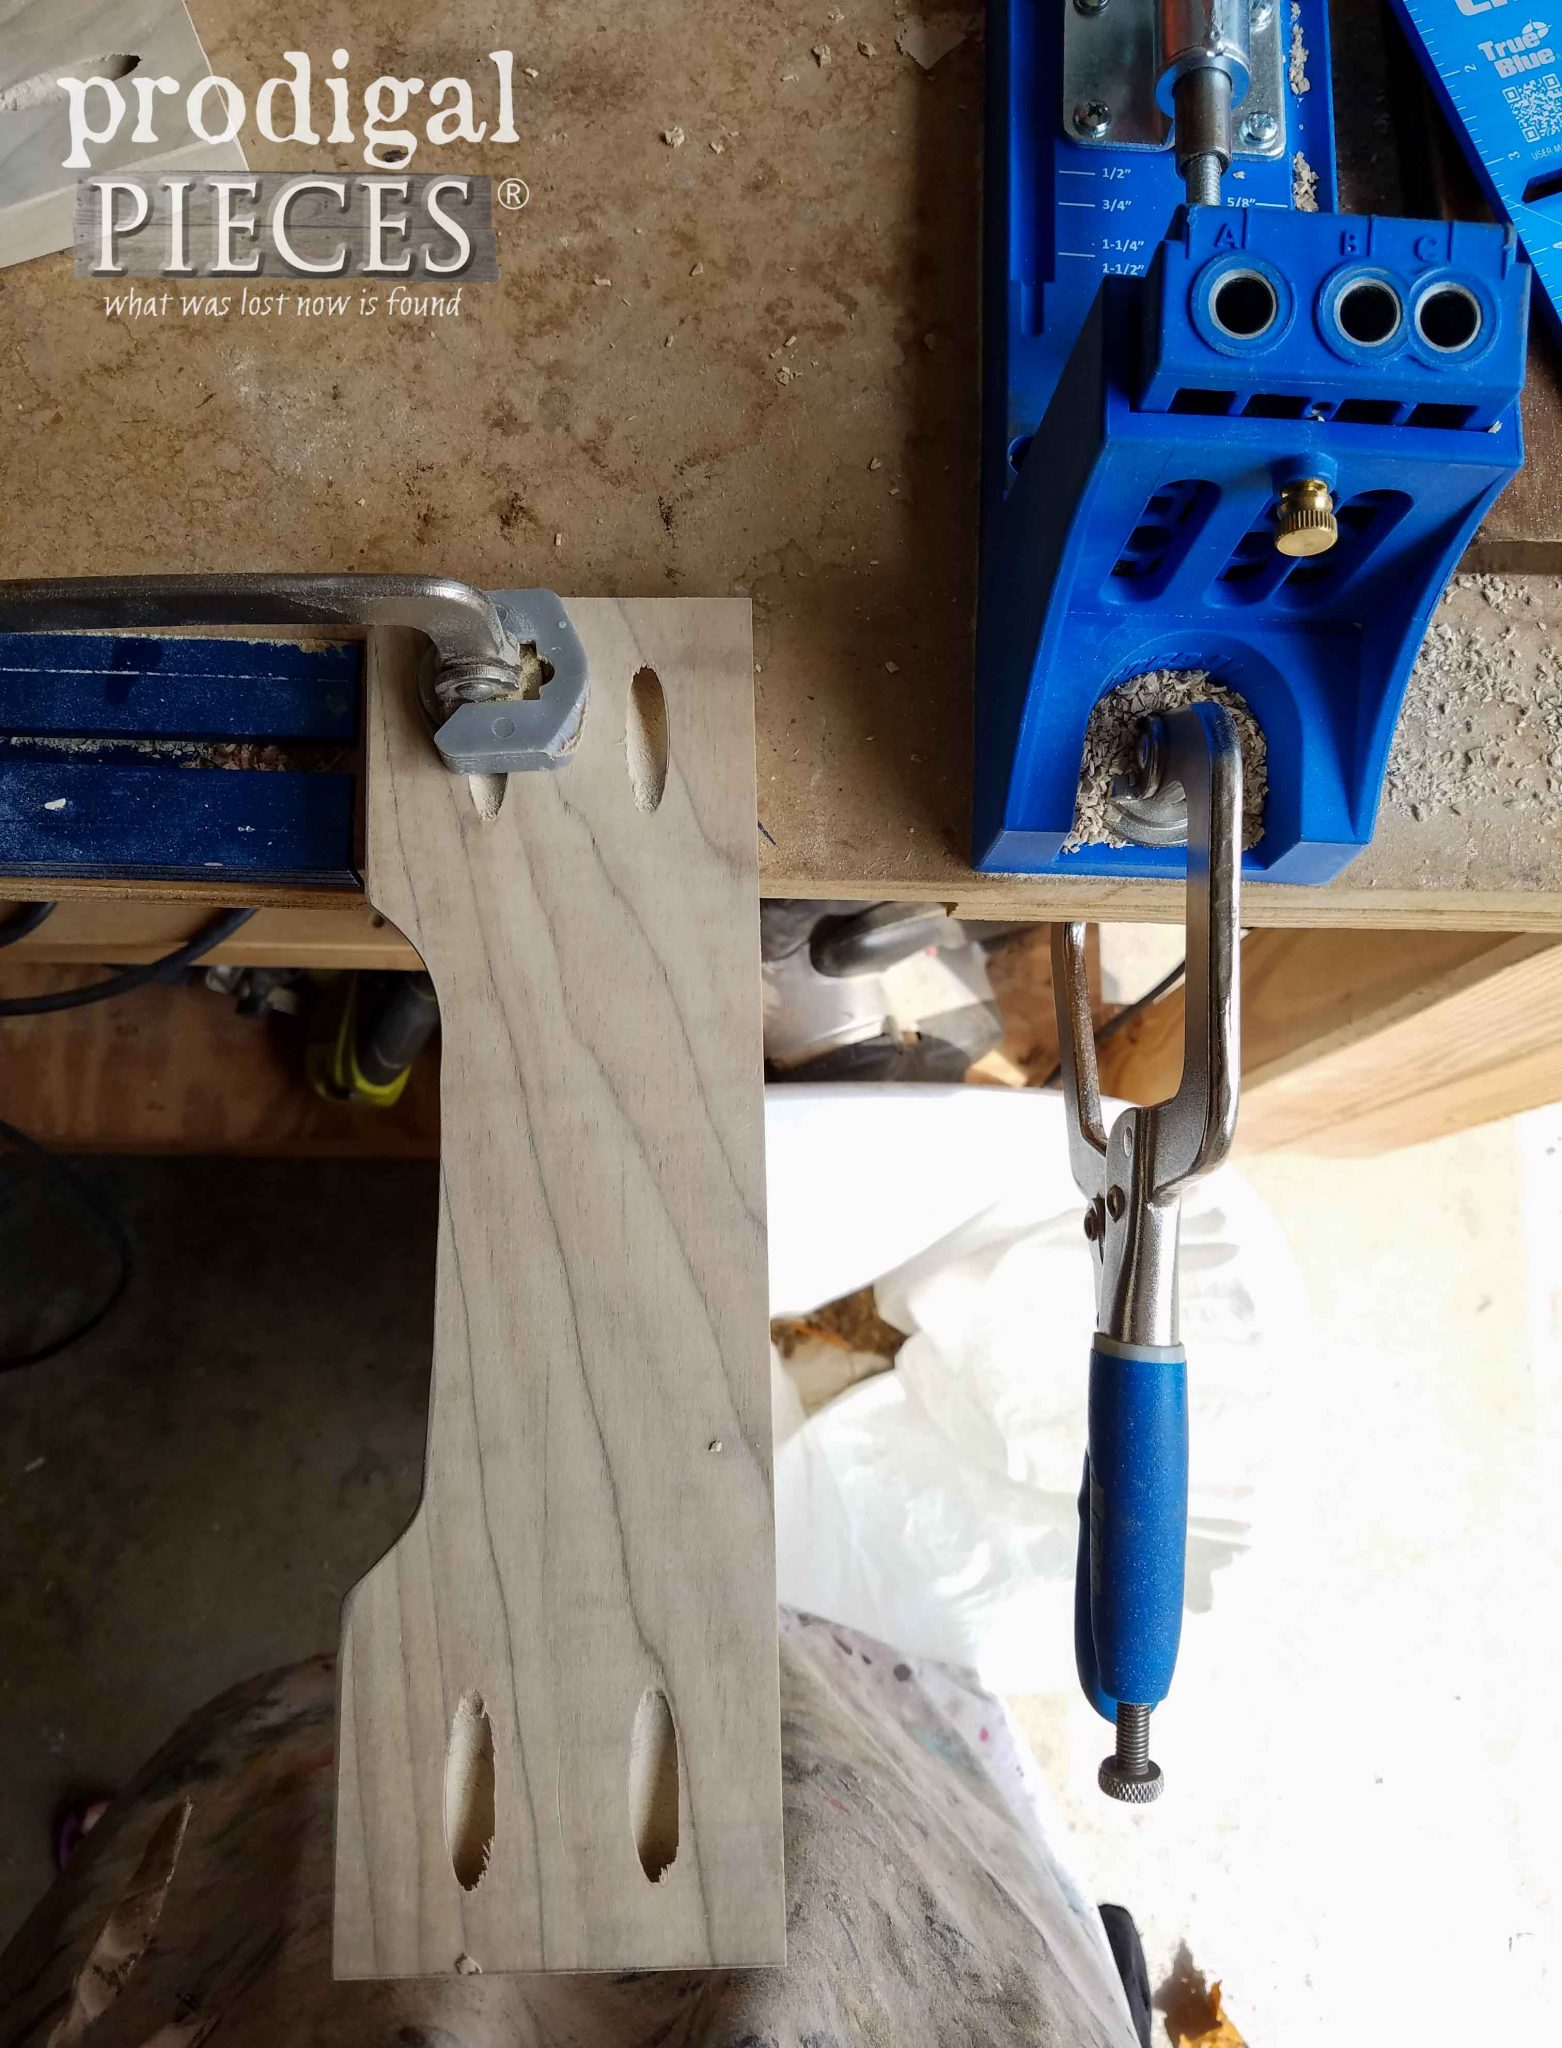 Kreg JIg Pocket Holes and Clamp Trak for Woodworking via Prodigal Pieces | prodigalpieces.com